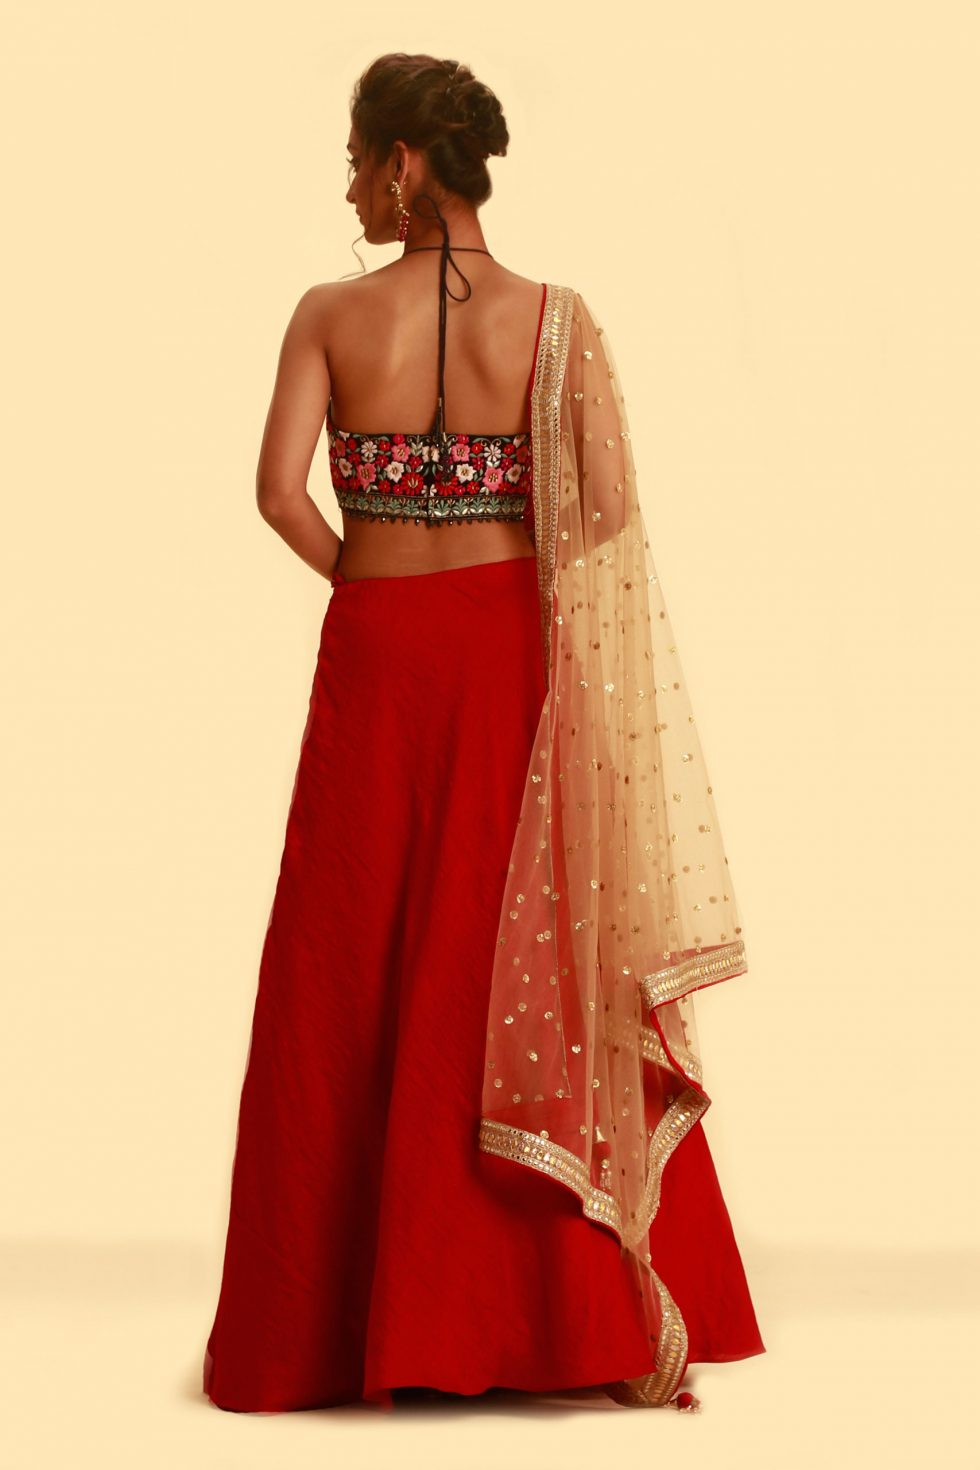 Black halter crop top with multi coloured embroidery and contrast red skirt with gold dupatta